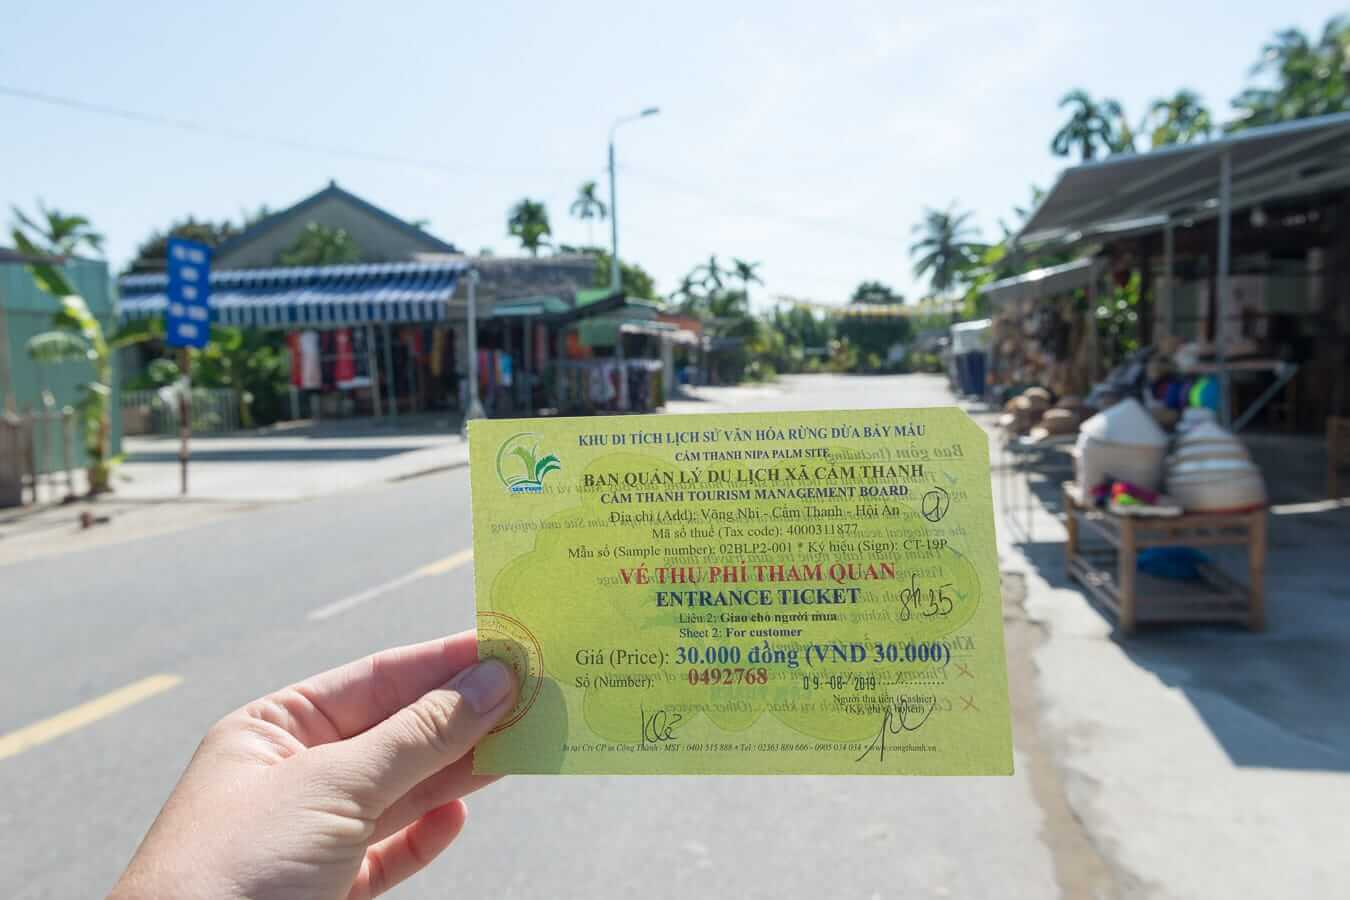 Entrance ticket to the Coconut Village